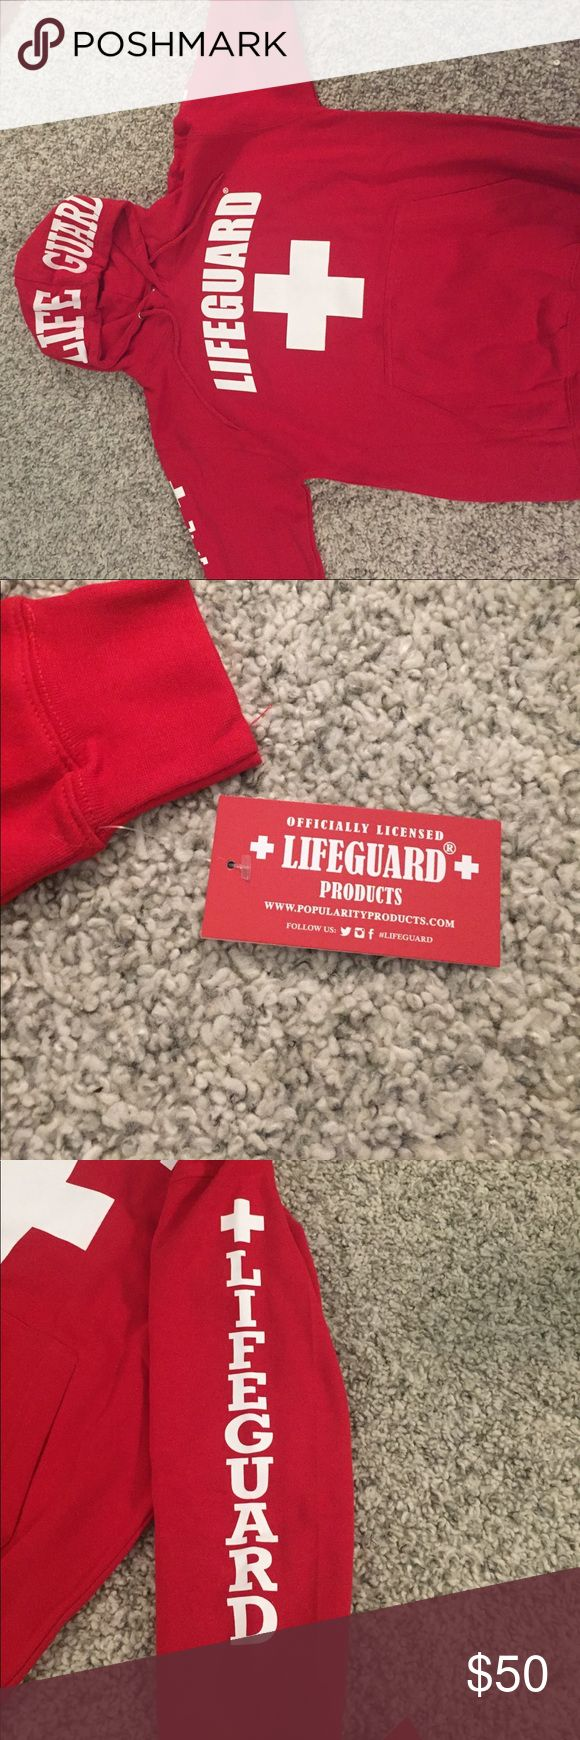 Red Lifeguard Hoodie from Los Angles Very comfortable and perfect for any occasion and cold weather. Has fuzz inside that keeps you very warm! Worn a couple times, still like new Jackets & Coats